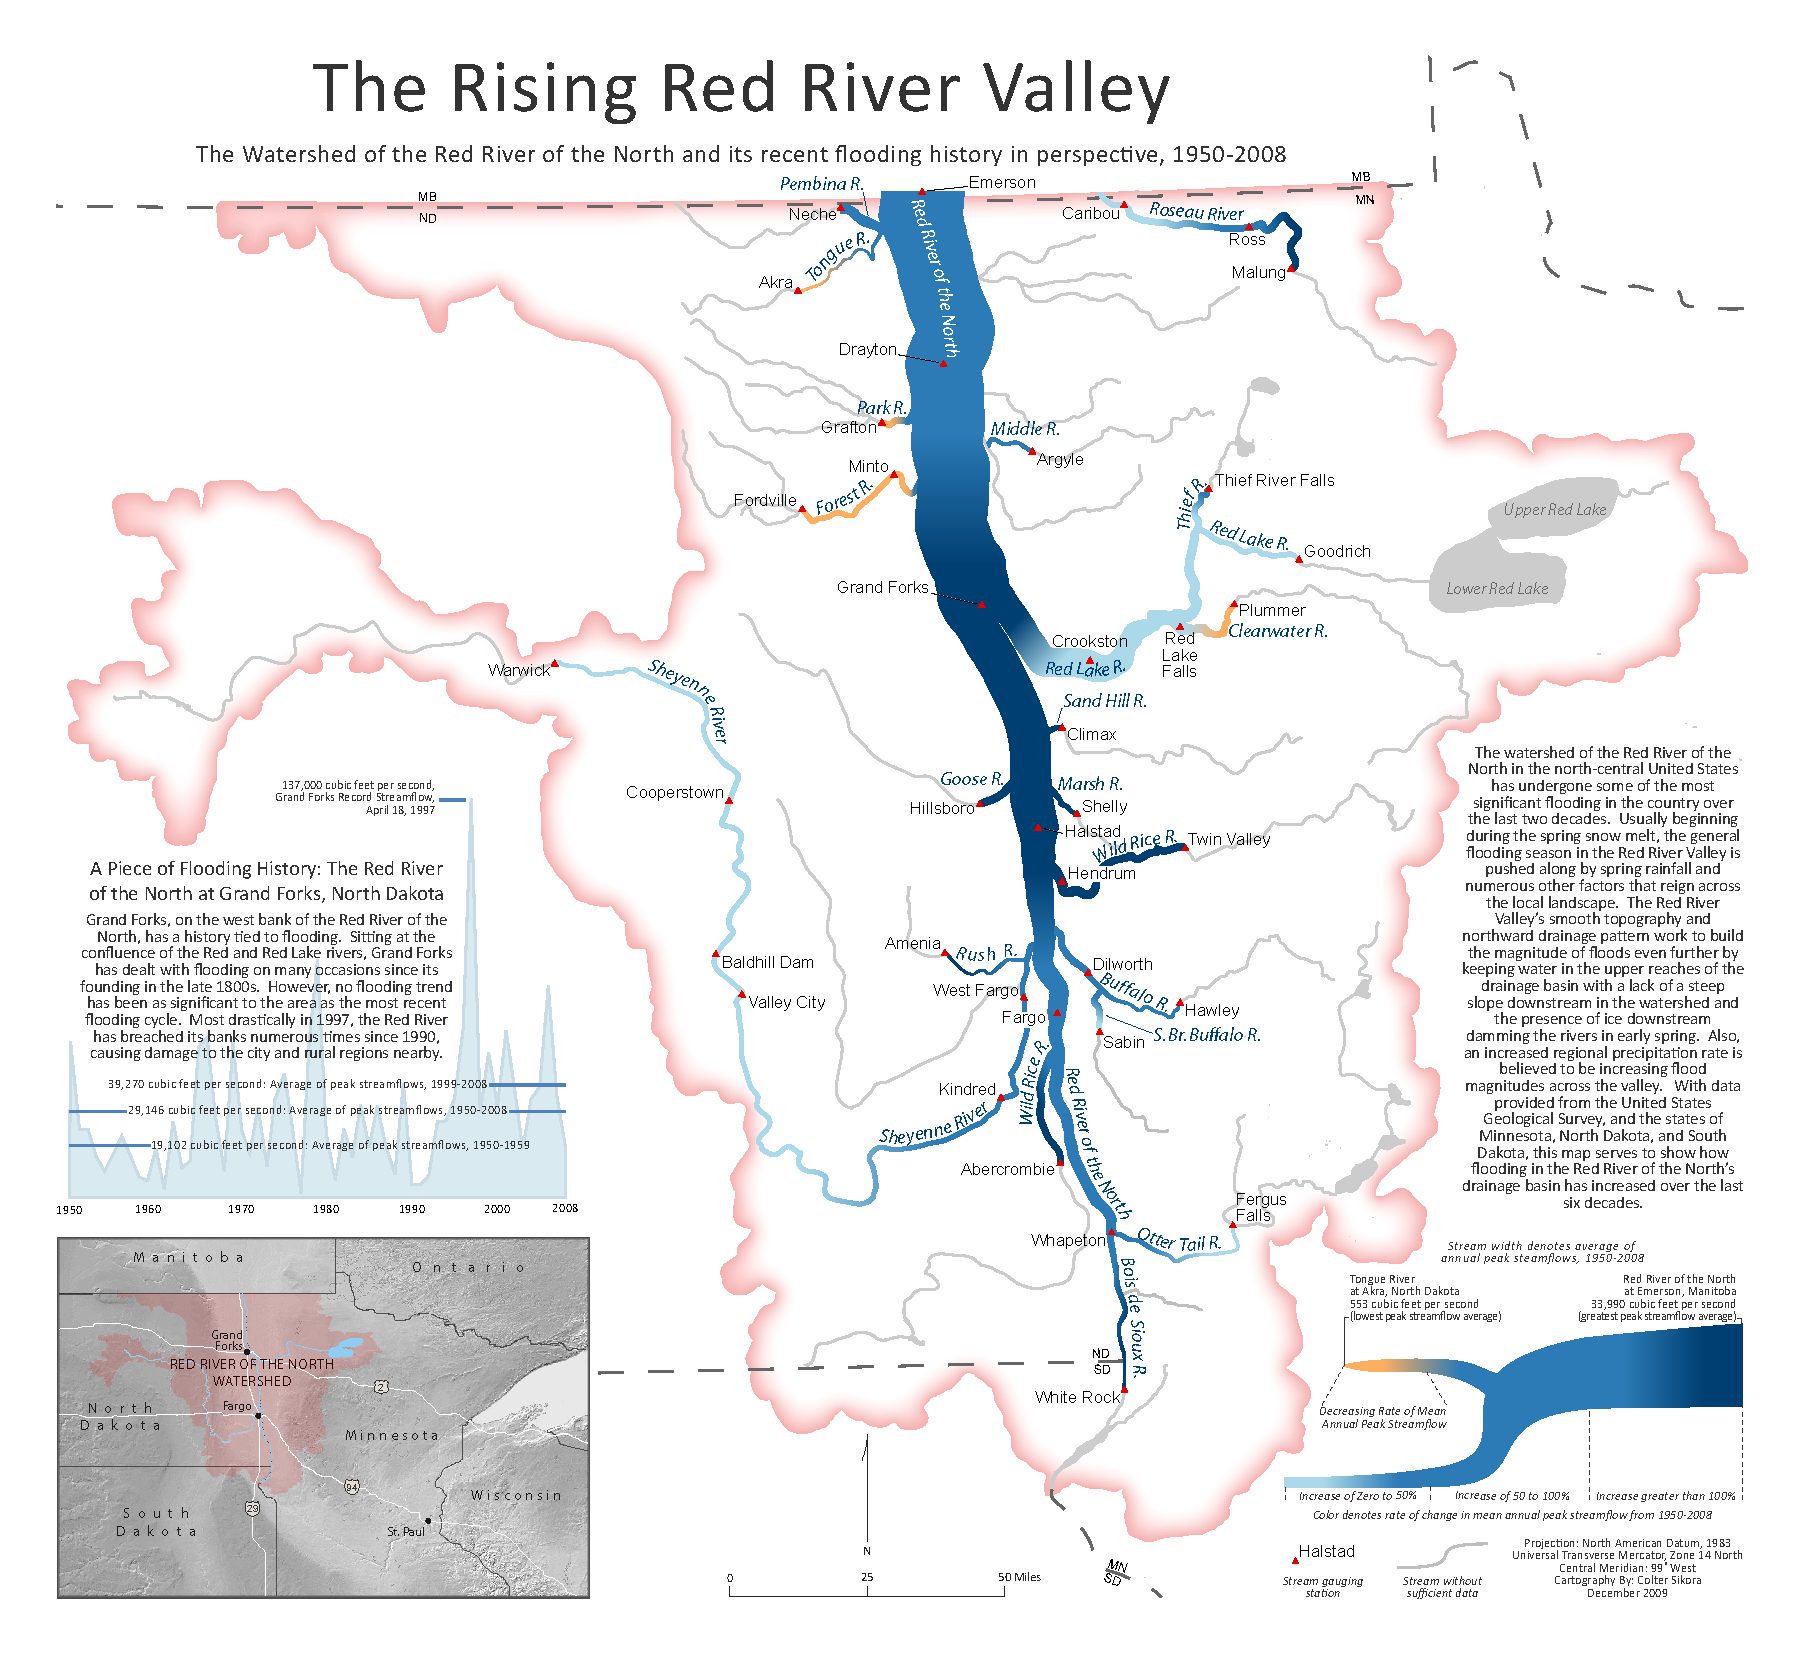 Colter Sikora Red River Valley Flooding Map Colterrific Maps a portfolio